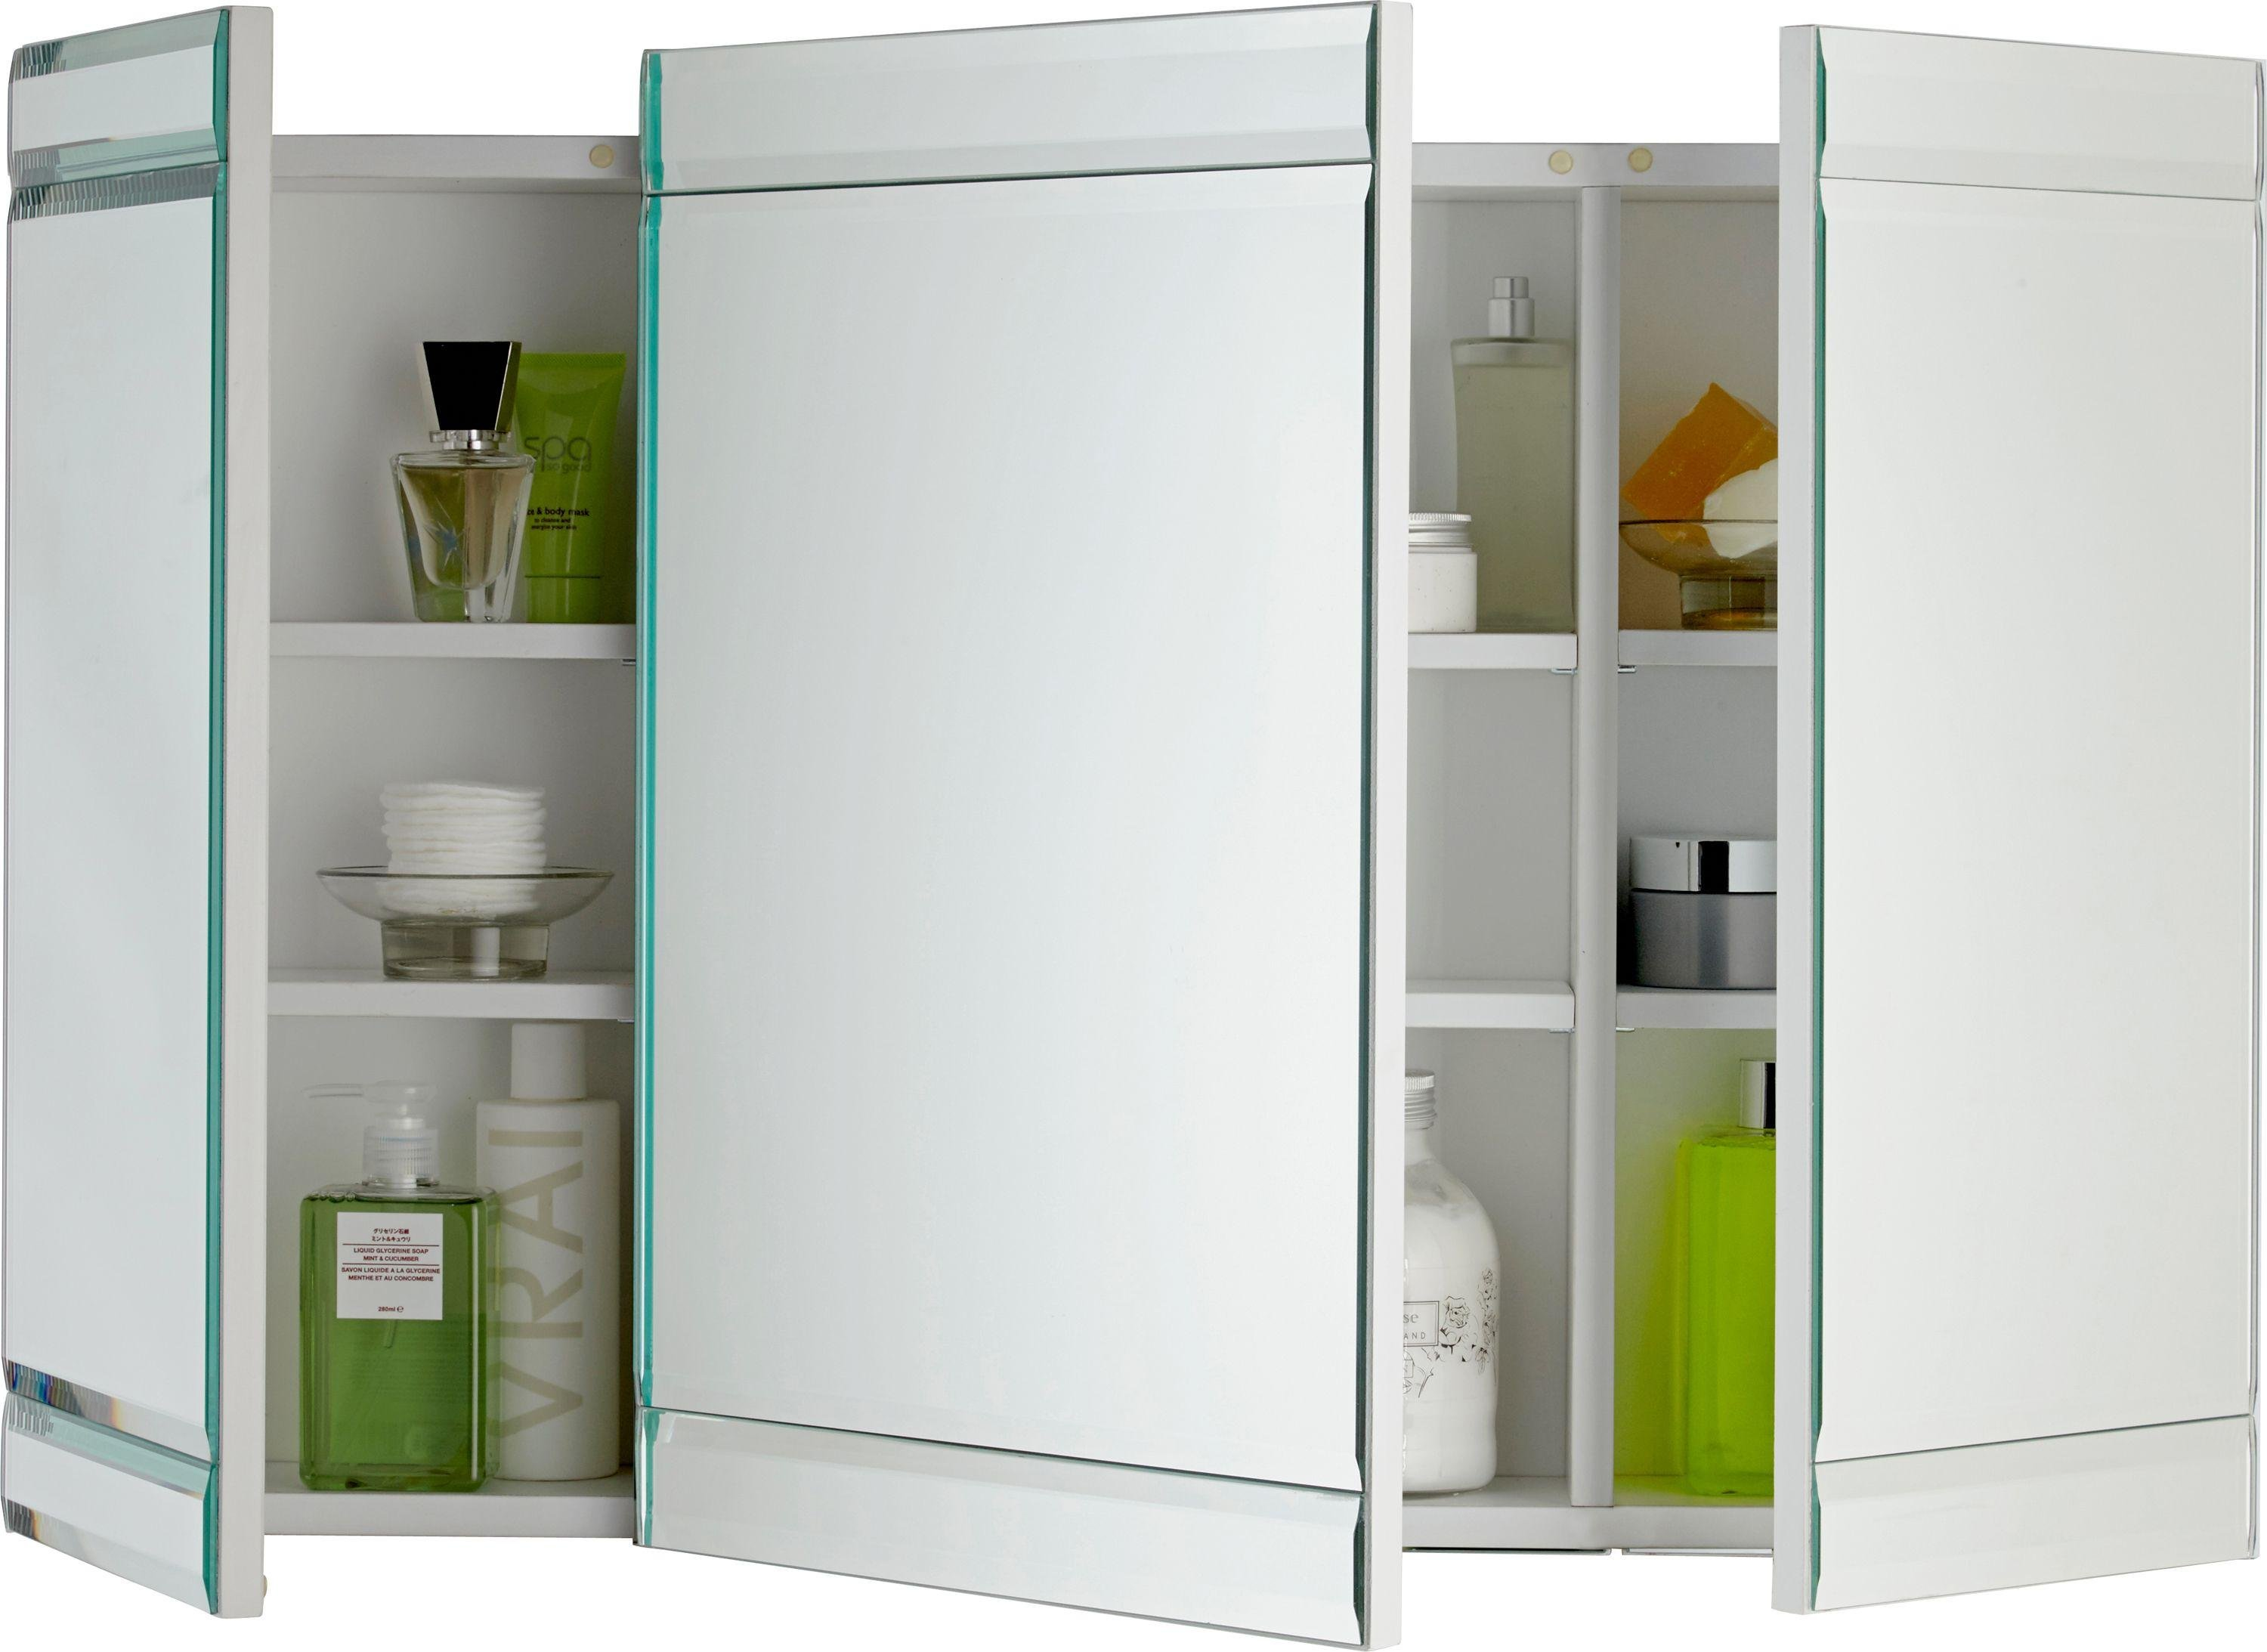 Mirrored Wall Cabinet buy heart of house triple mirrored wall cabinet - white at argos